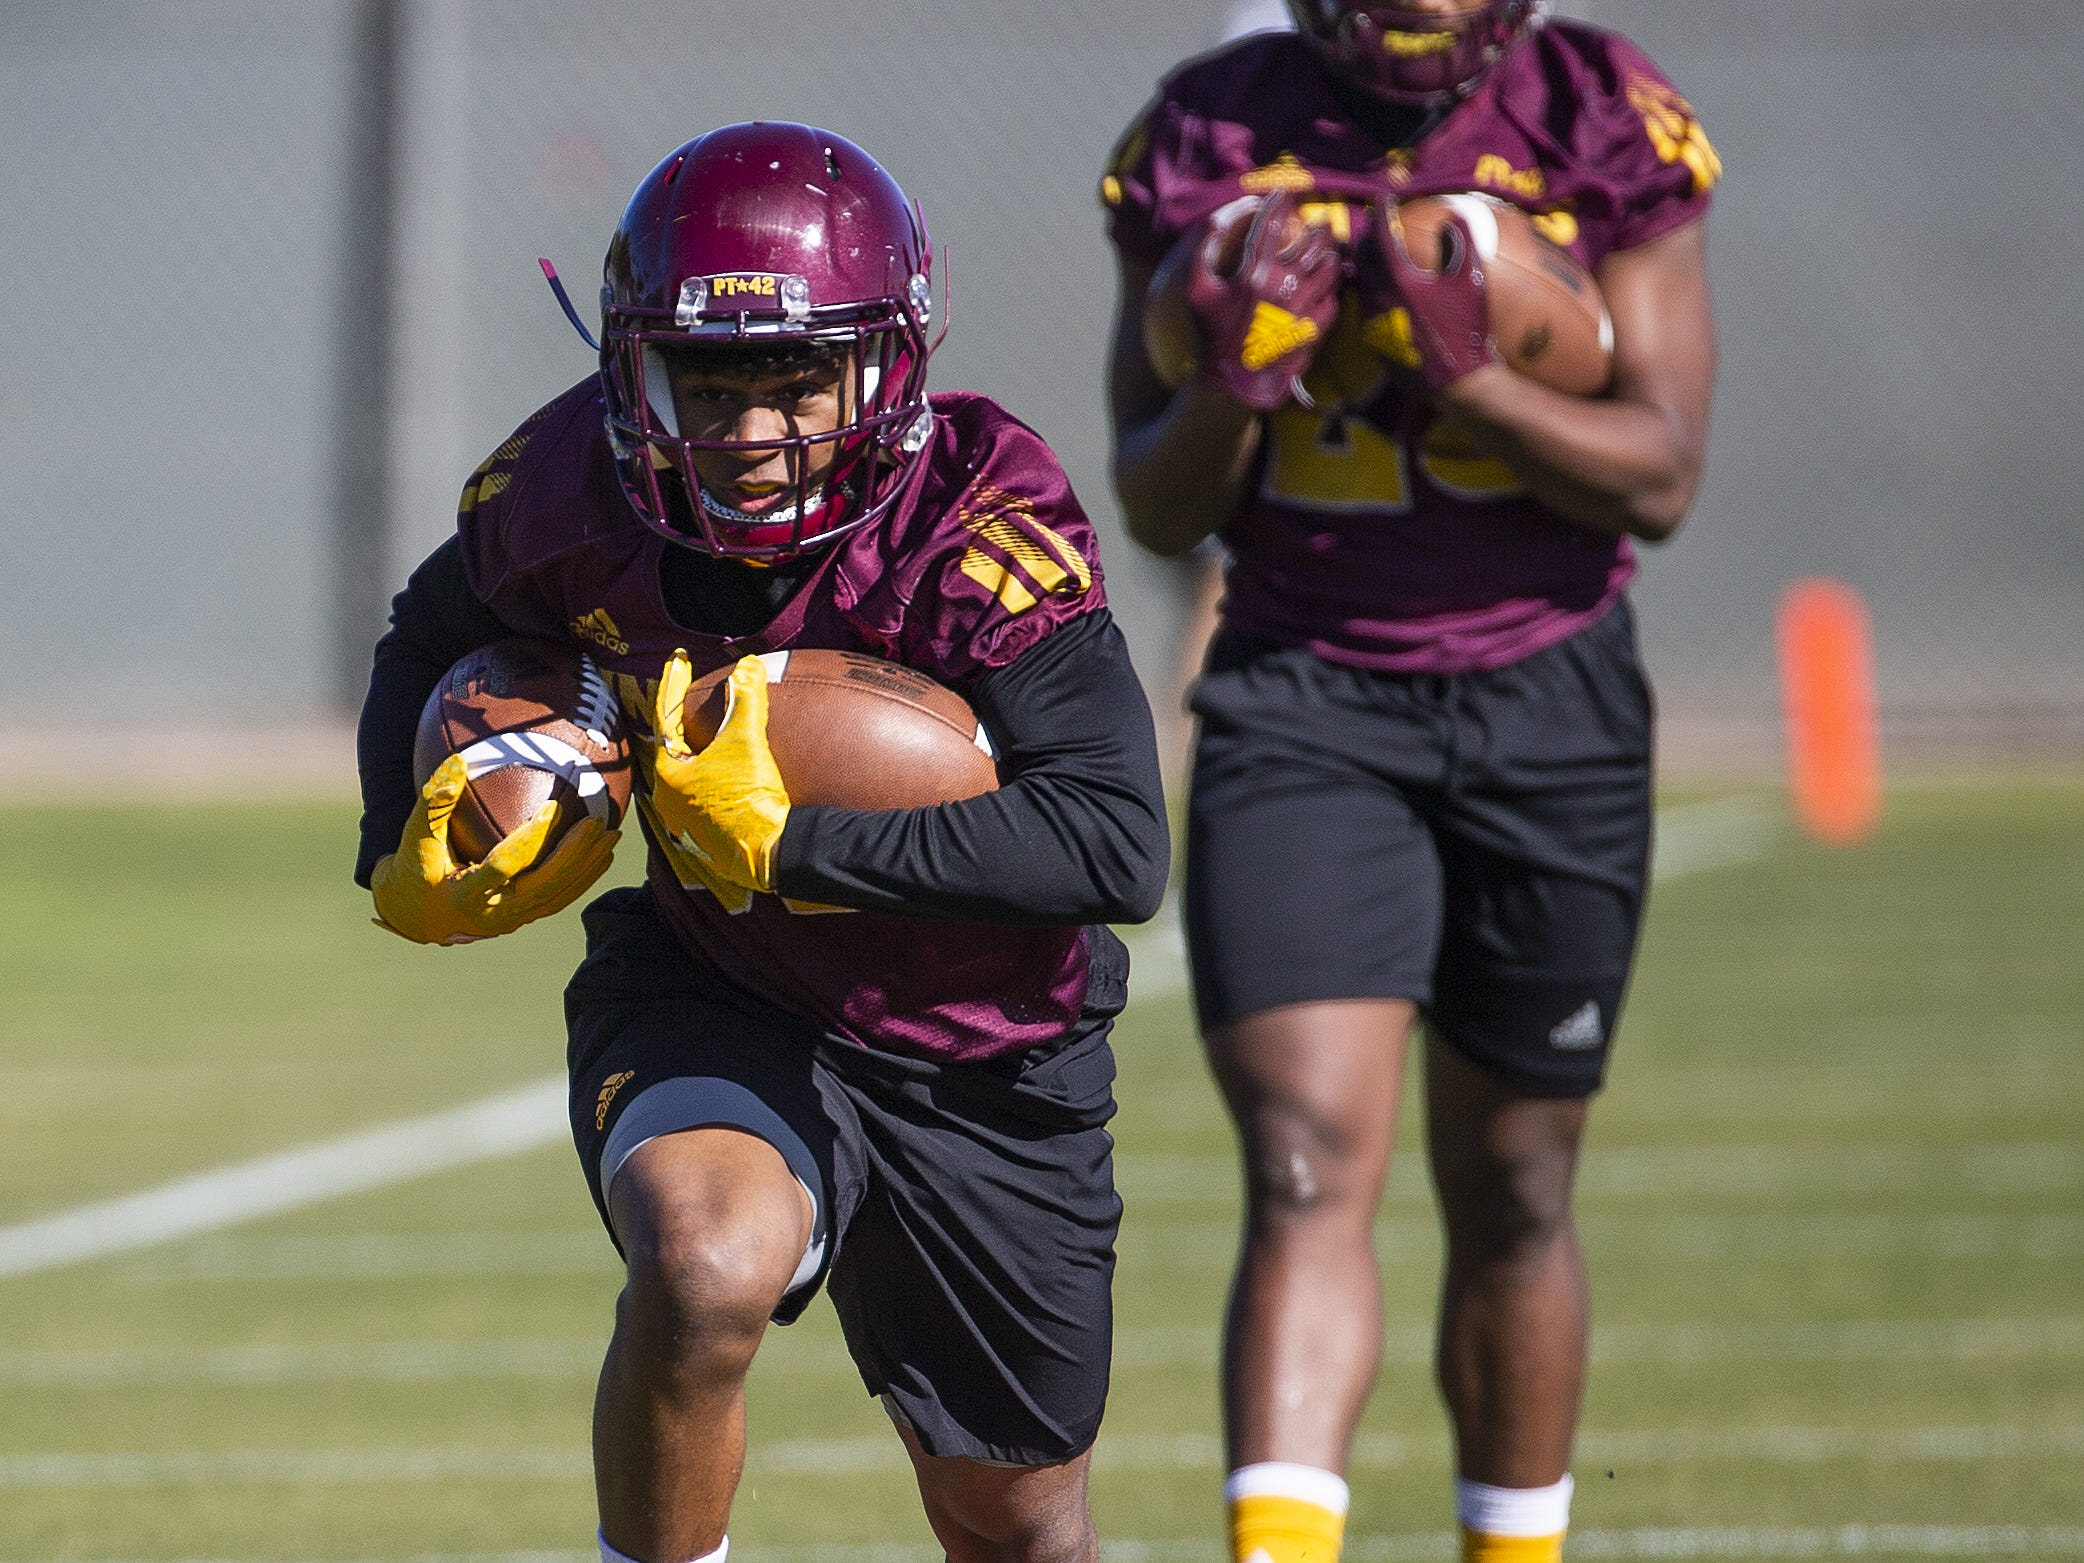 The Arizona State University football team practiced in Tempe, Tuesday, February 26, 2019.   Running back Paul Lucas runs a course during drills.